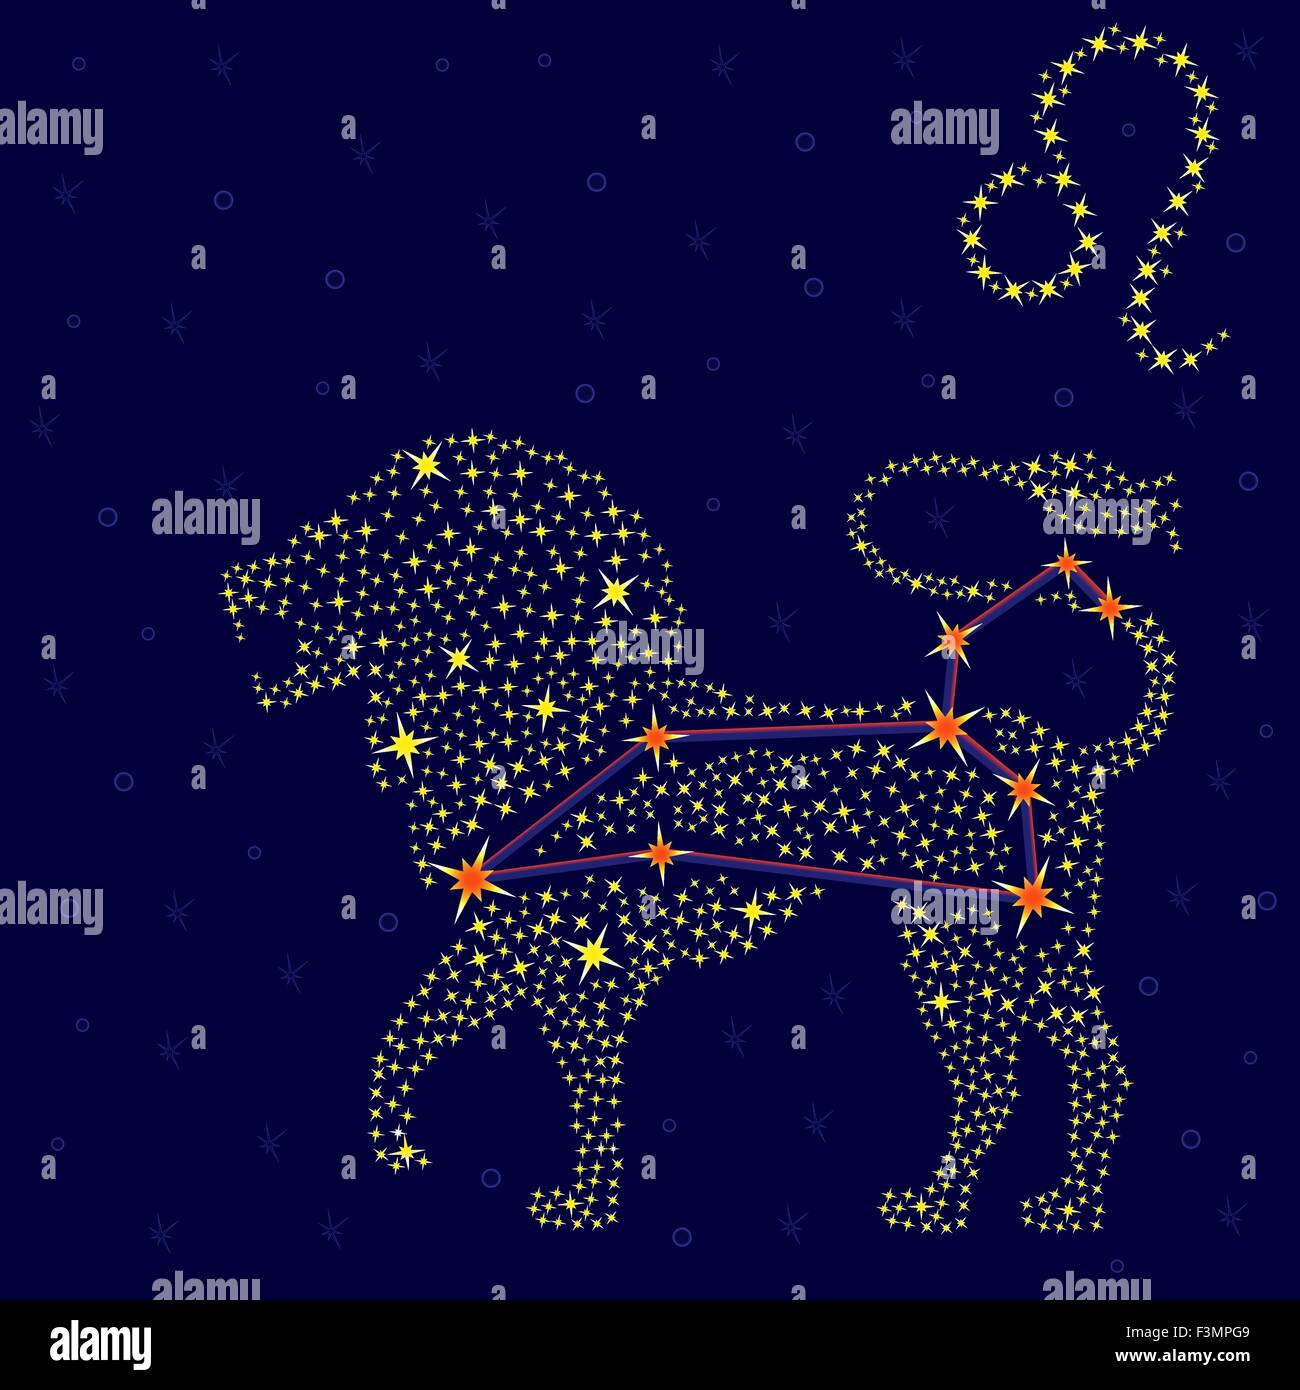 Zodiac Sign Leo On A Background Of The Starry Sky With The